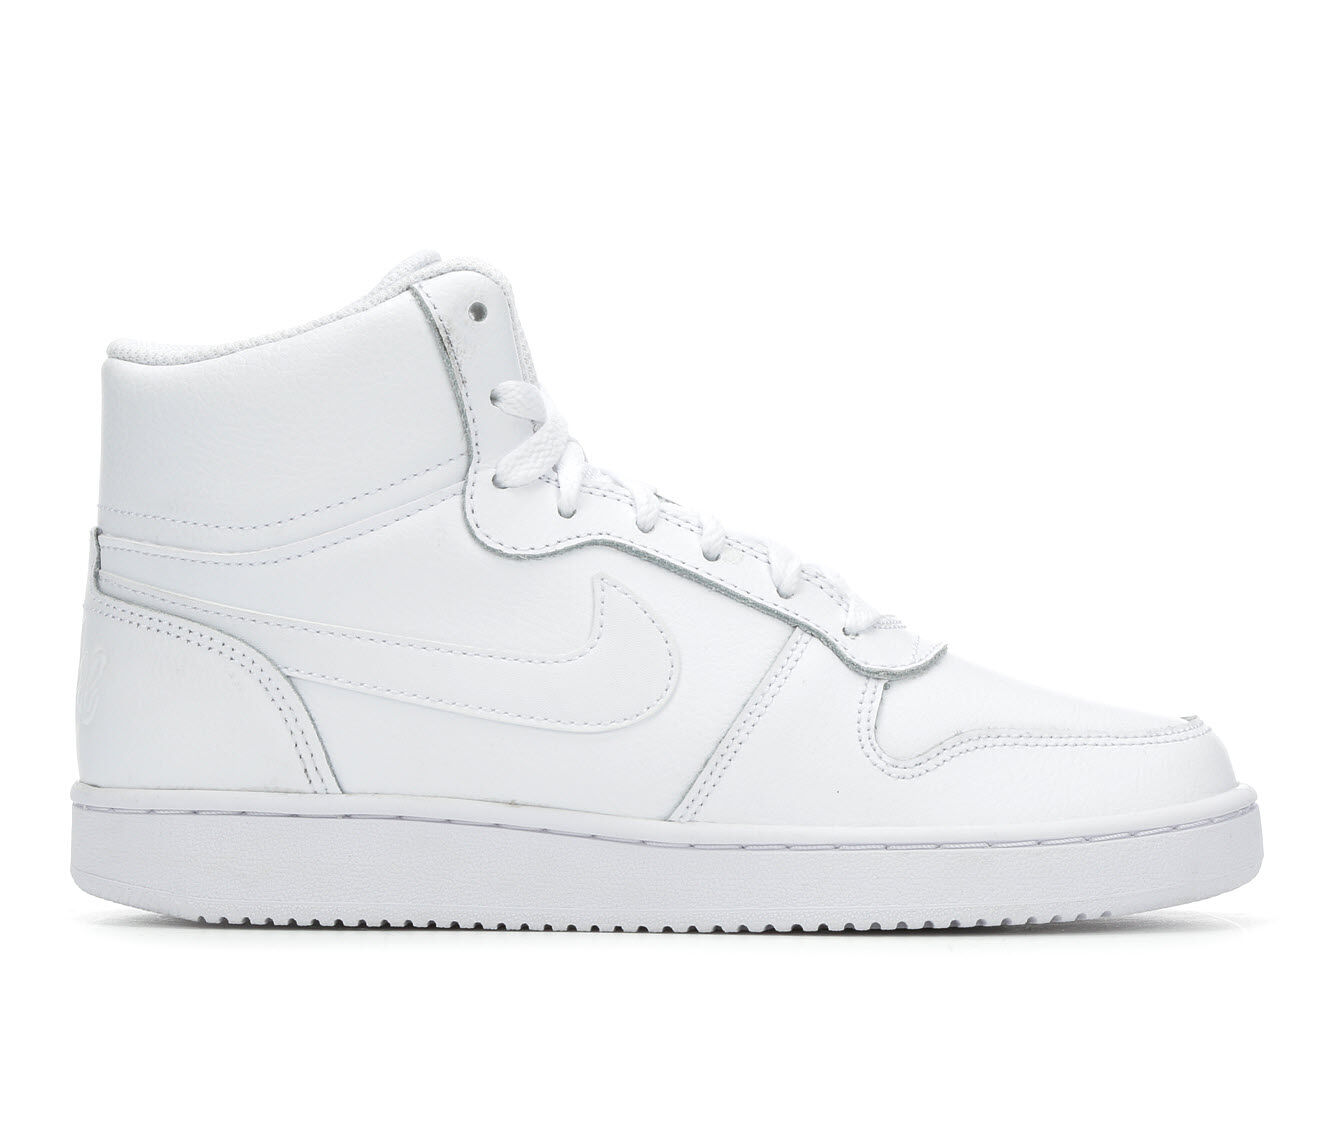 100% quality materials Women's Nike Ebernon Mid Fashion Basketball Shoes White/White